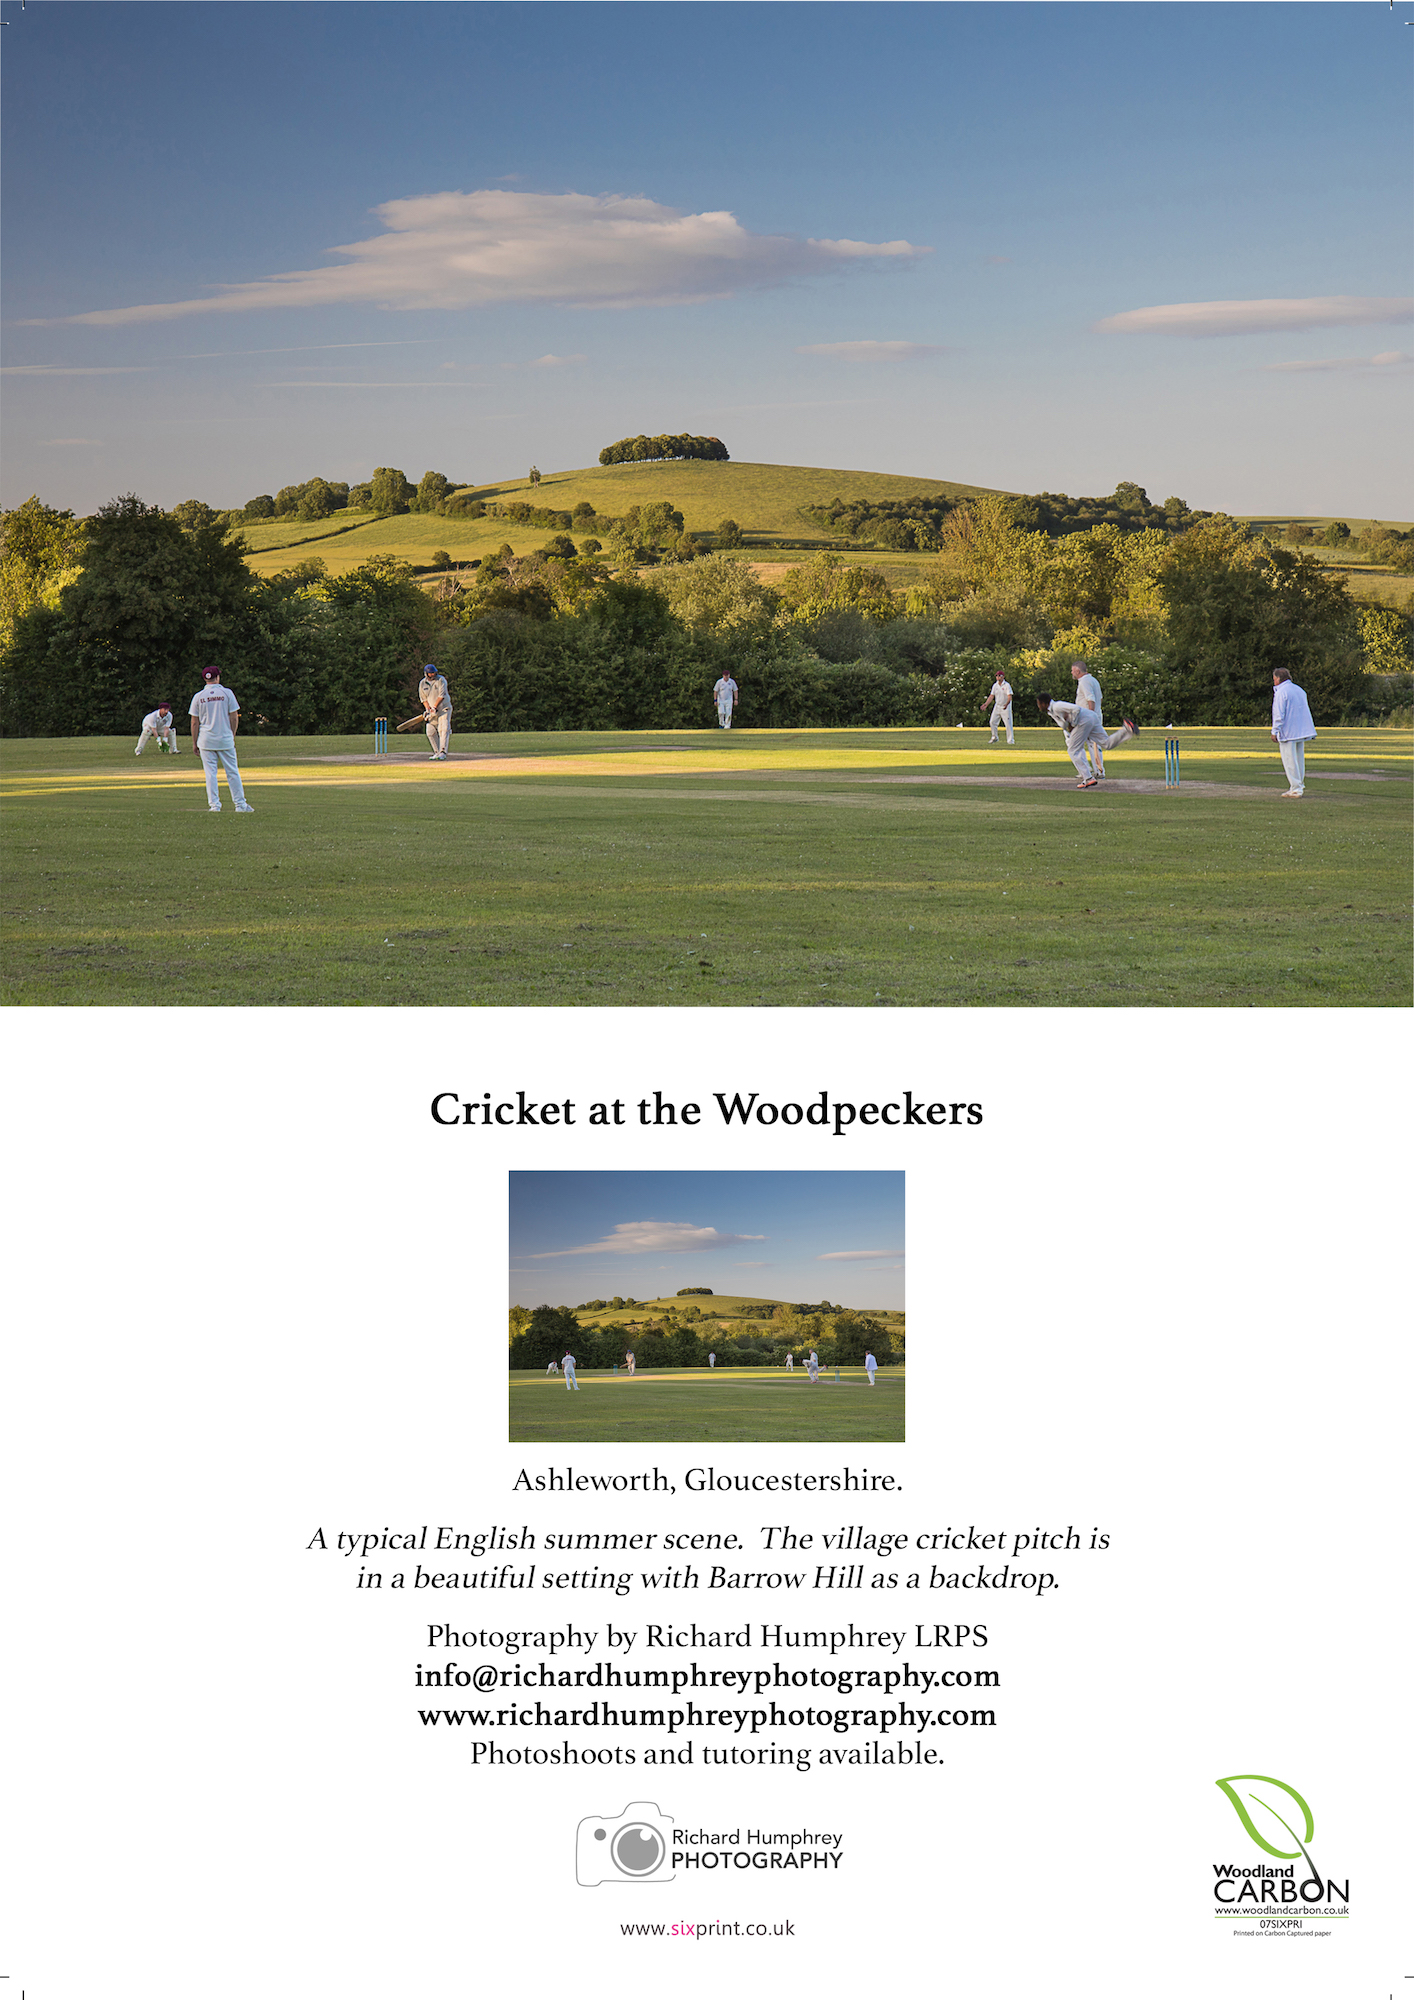 Cricket at the Woodpeckers